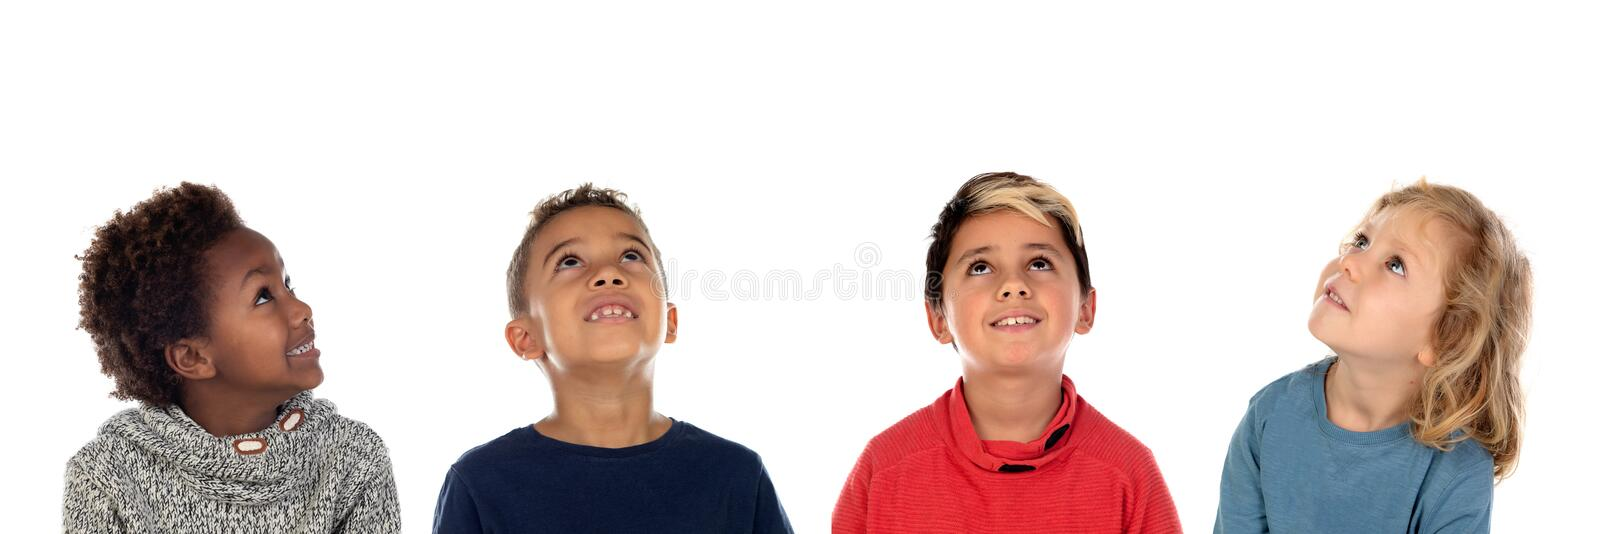 Four happy children looking up royalty free stock photo